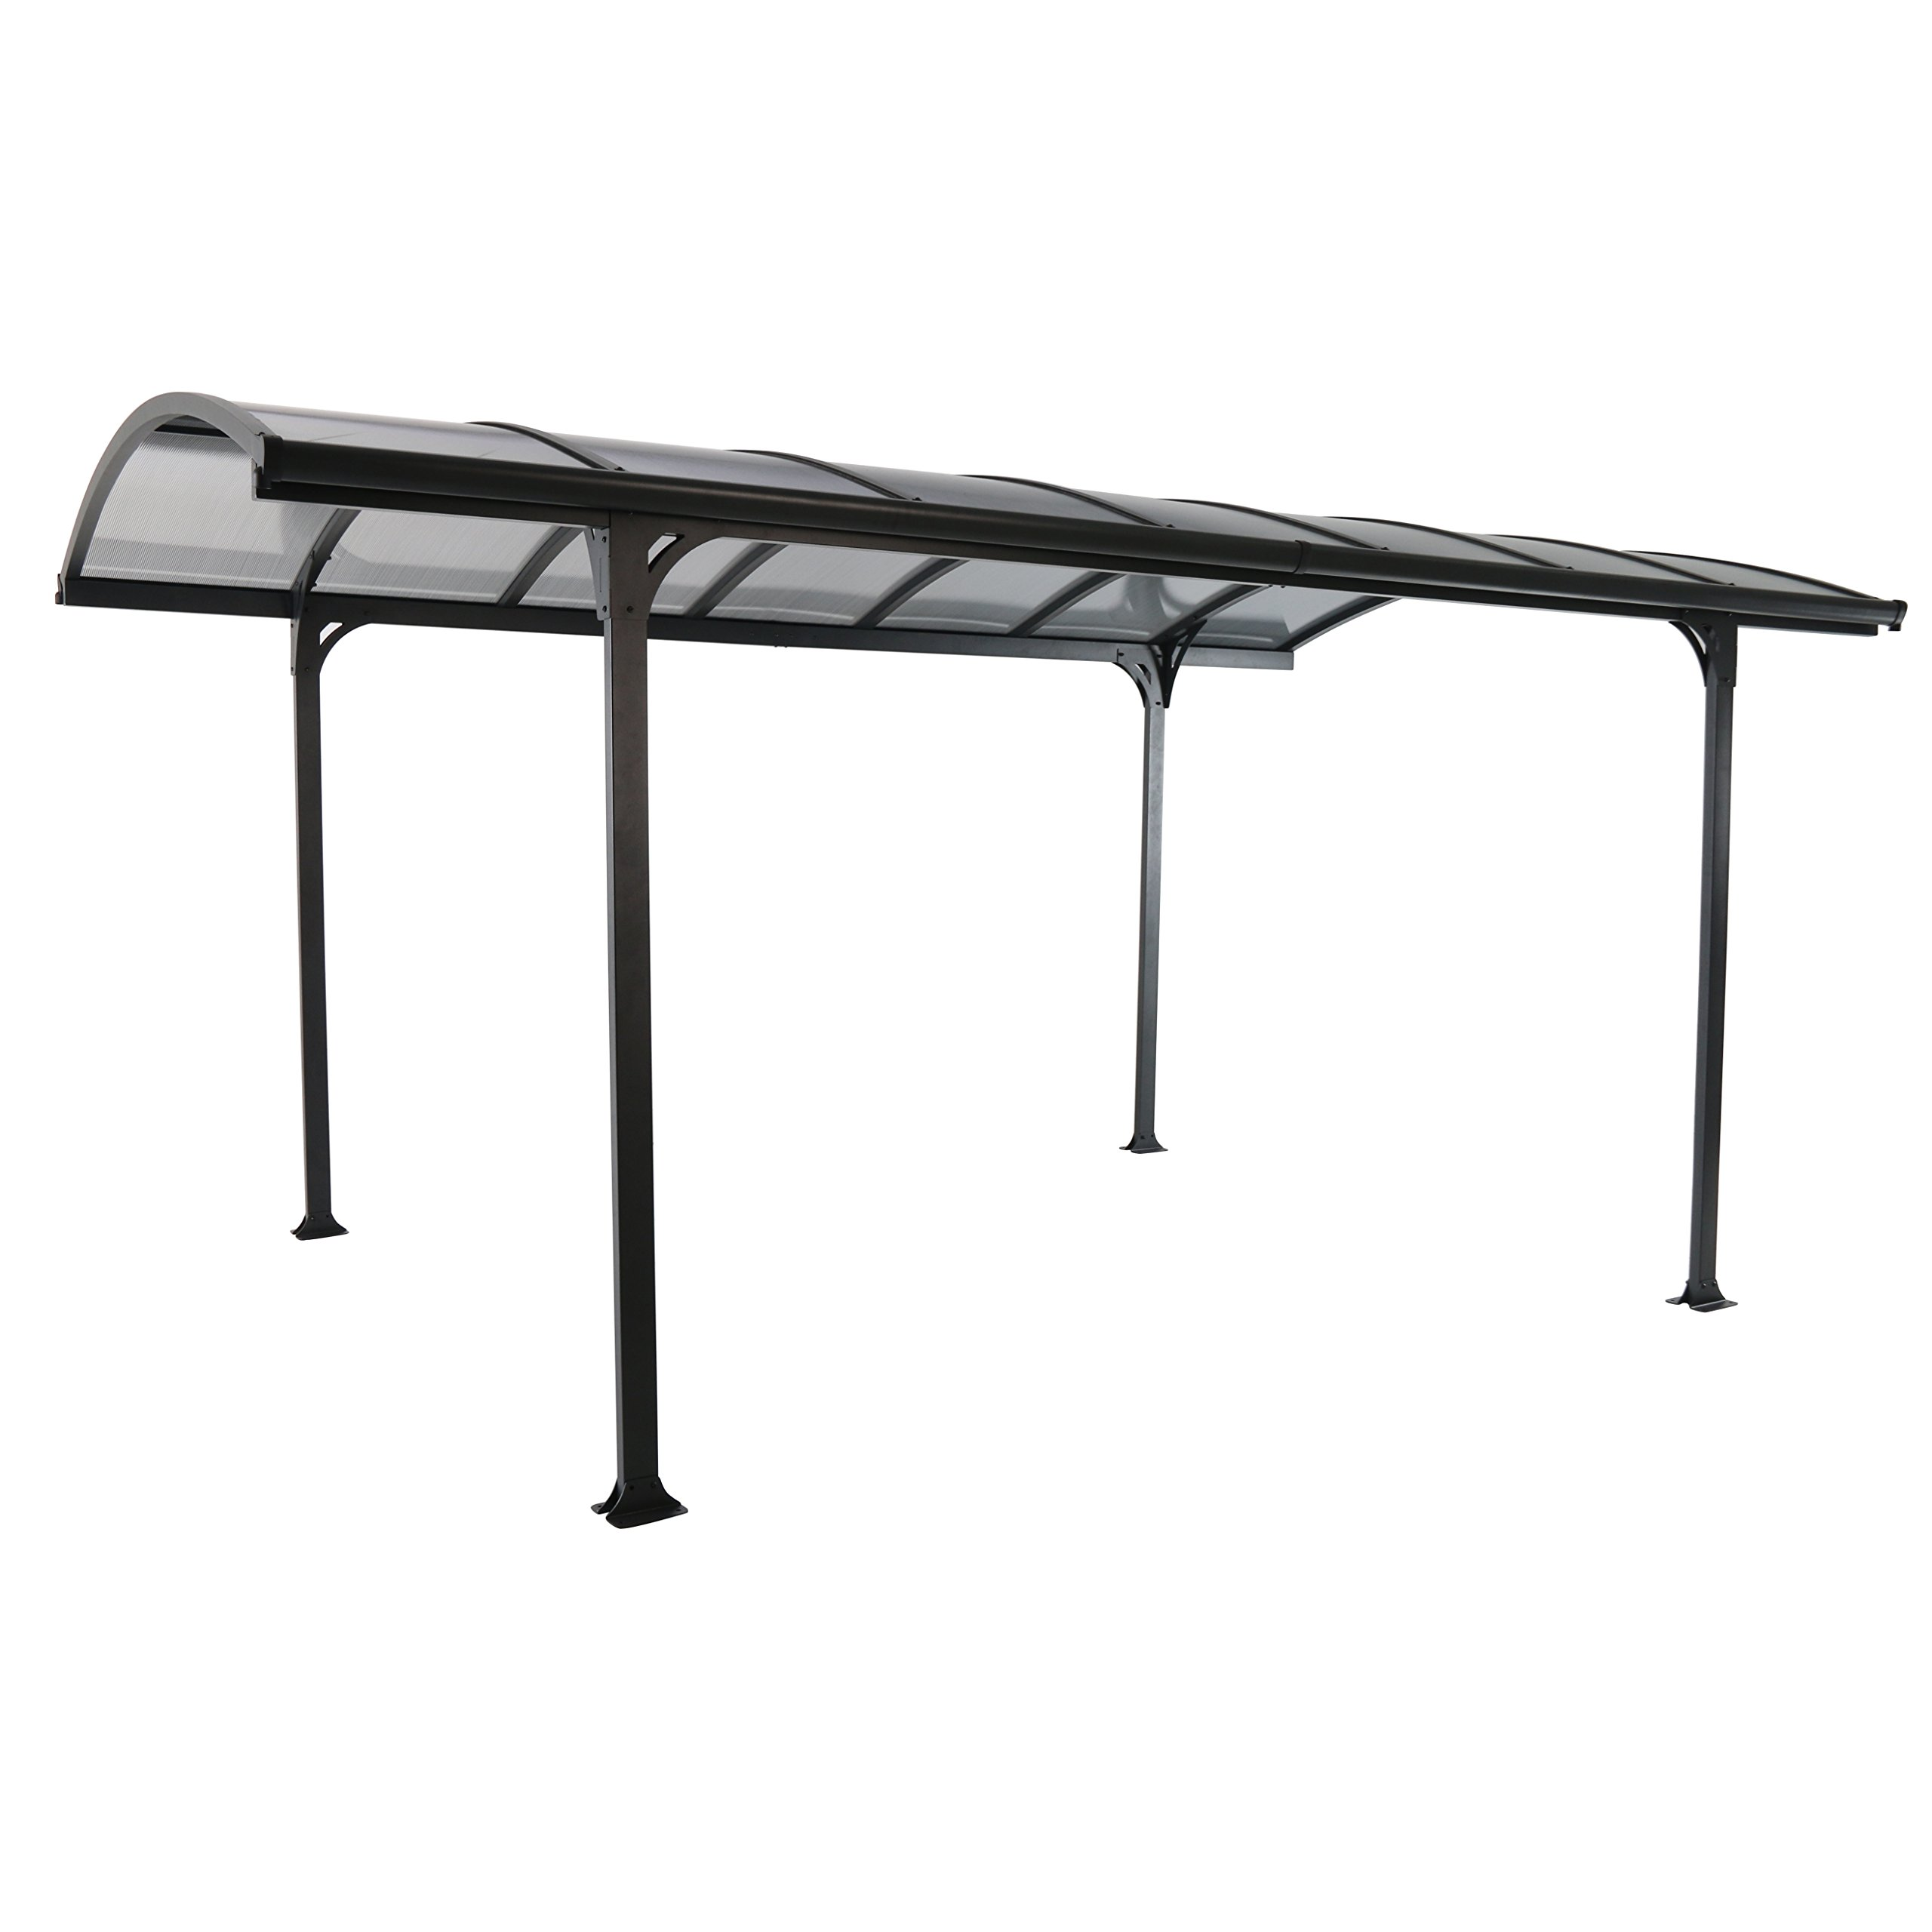 Royal Garden 953403 Carport Gazebo, Antracita, 5 x 3 m: Amazon.es ...